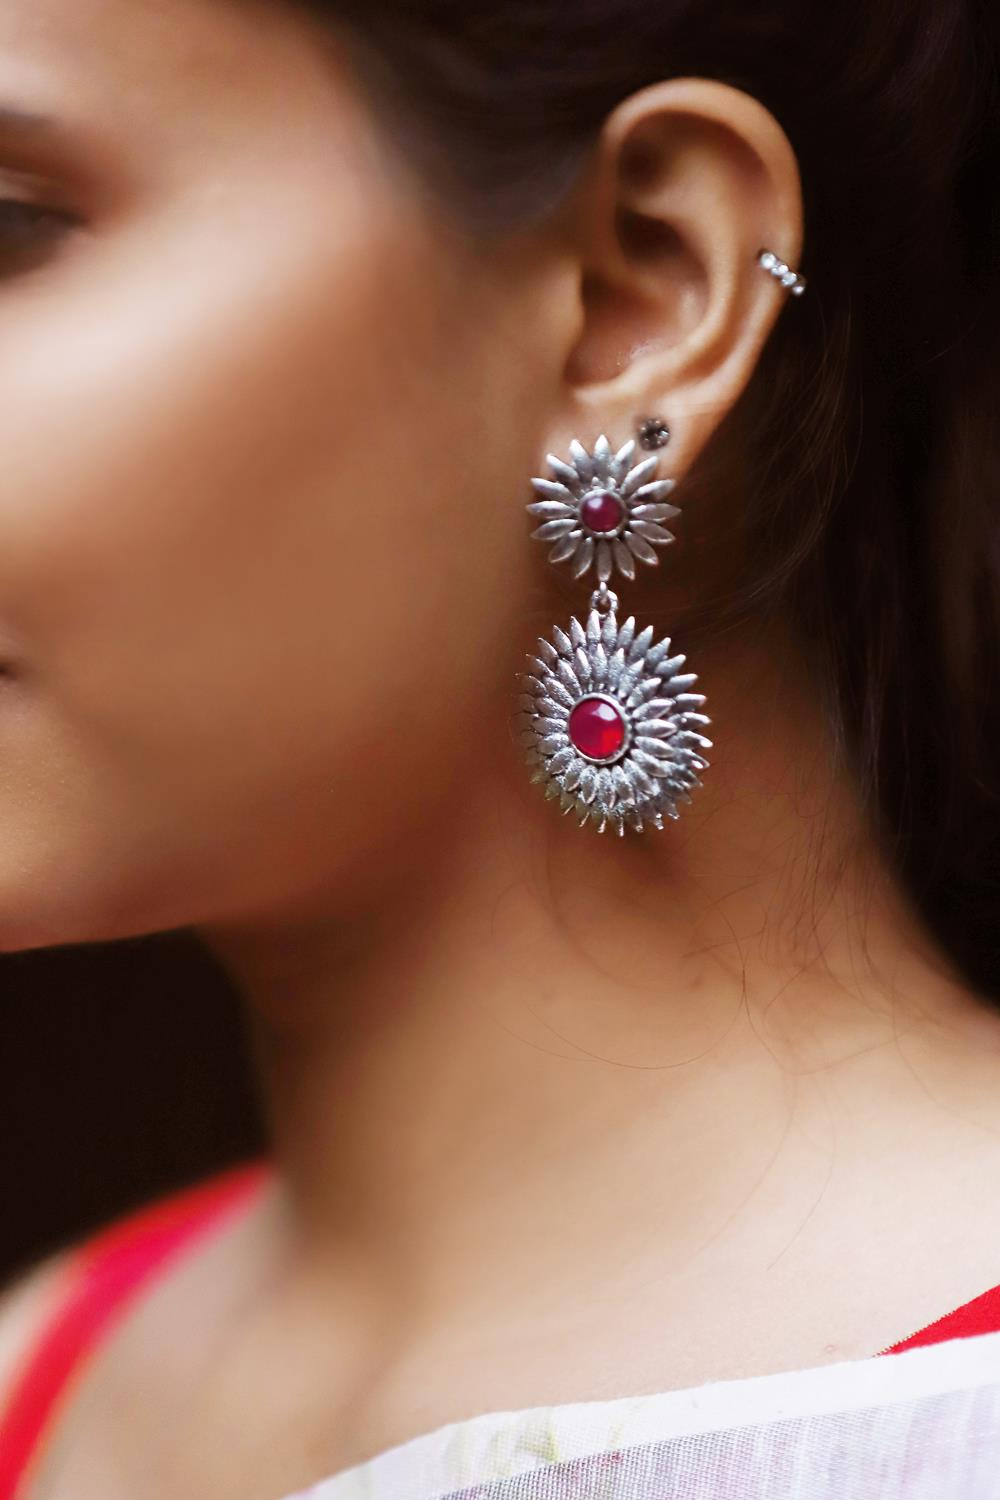 statement-jewellery-collections-2019 (1)statement-jewellery-collections-2019 (1)statement-jewellery-collections-2019 (1)statement-jewellery-collections-2019 (1)statement-jewellery-collections-2019 (1)statement-jewellery-collections-2019 (1)statement-jewellery-collections-2019 (15)